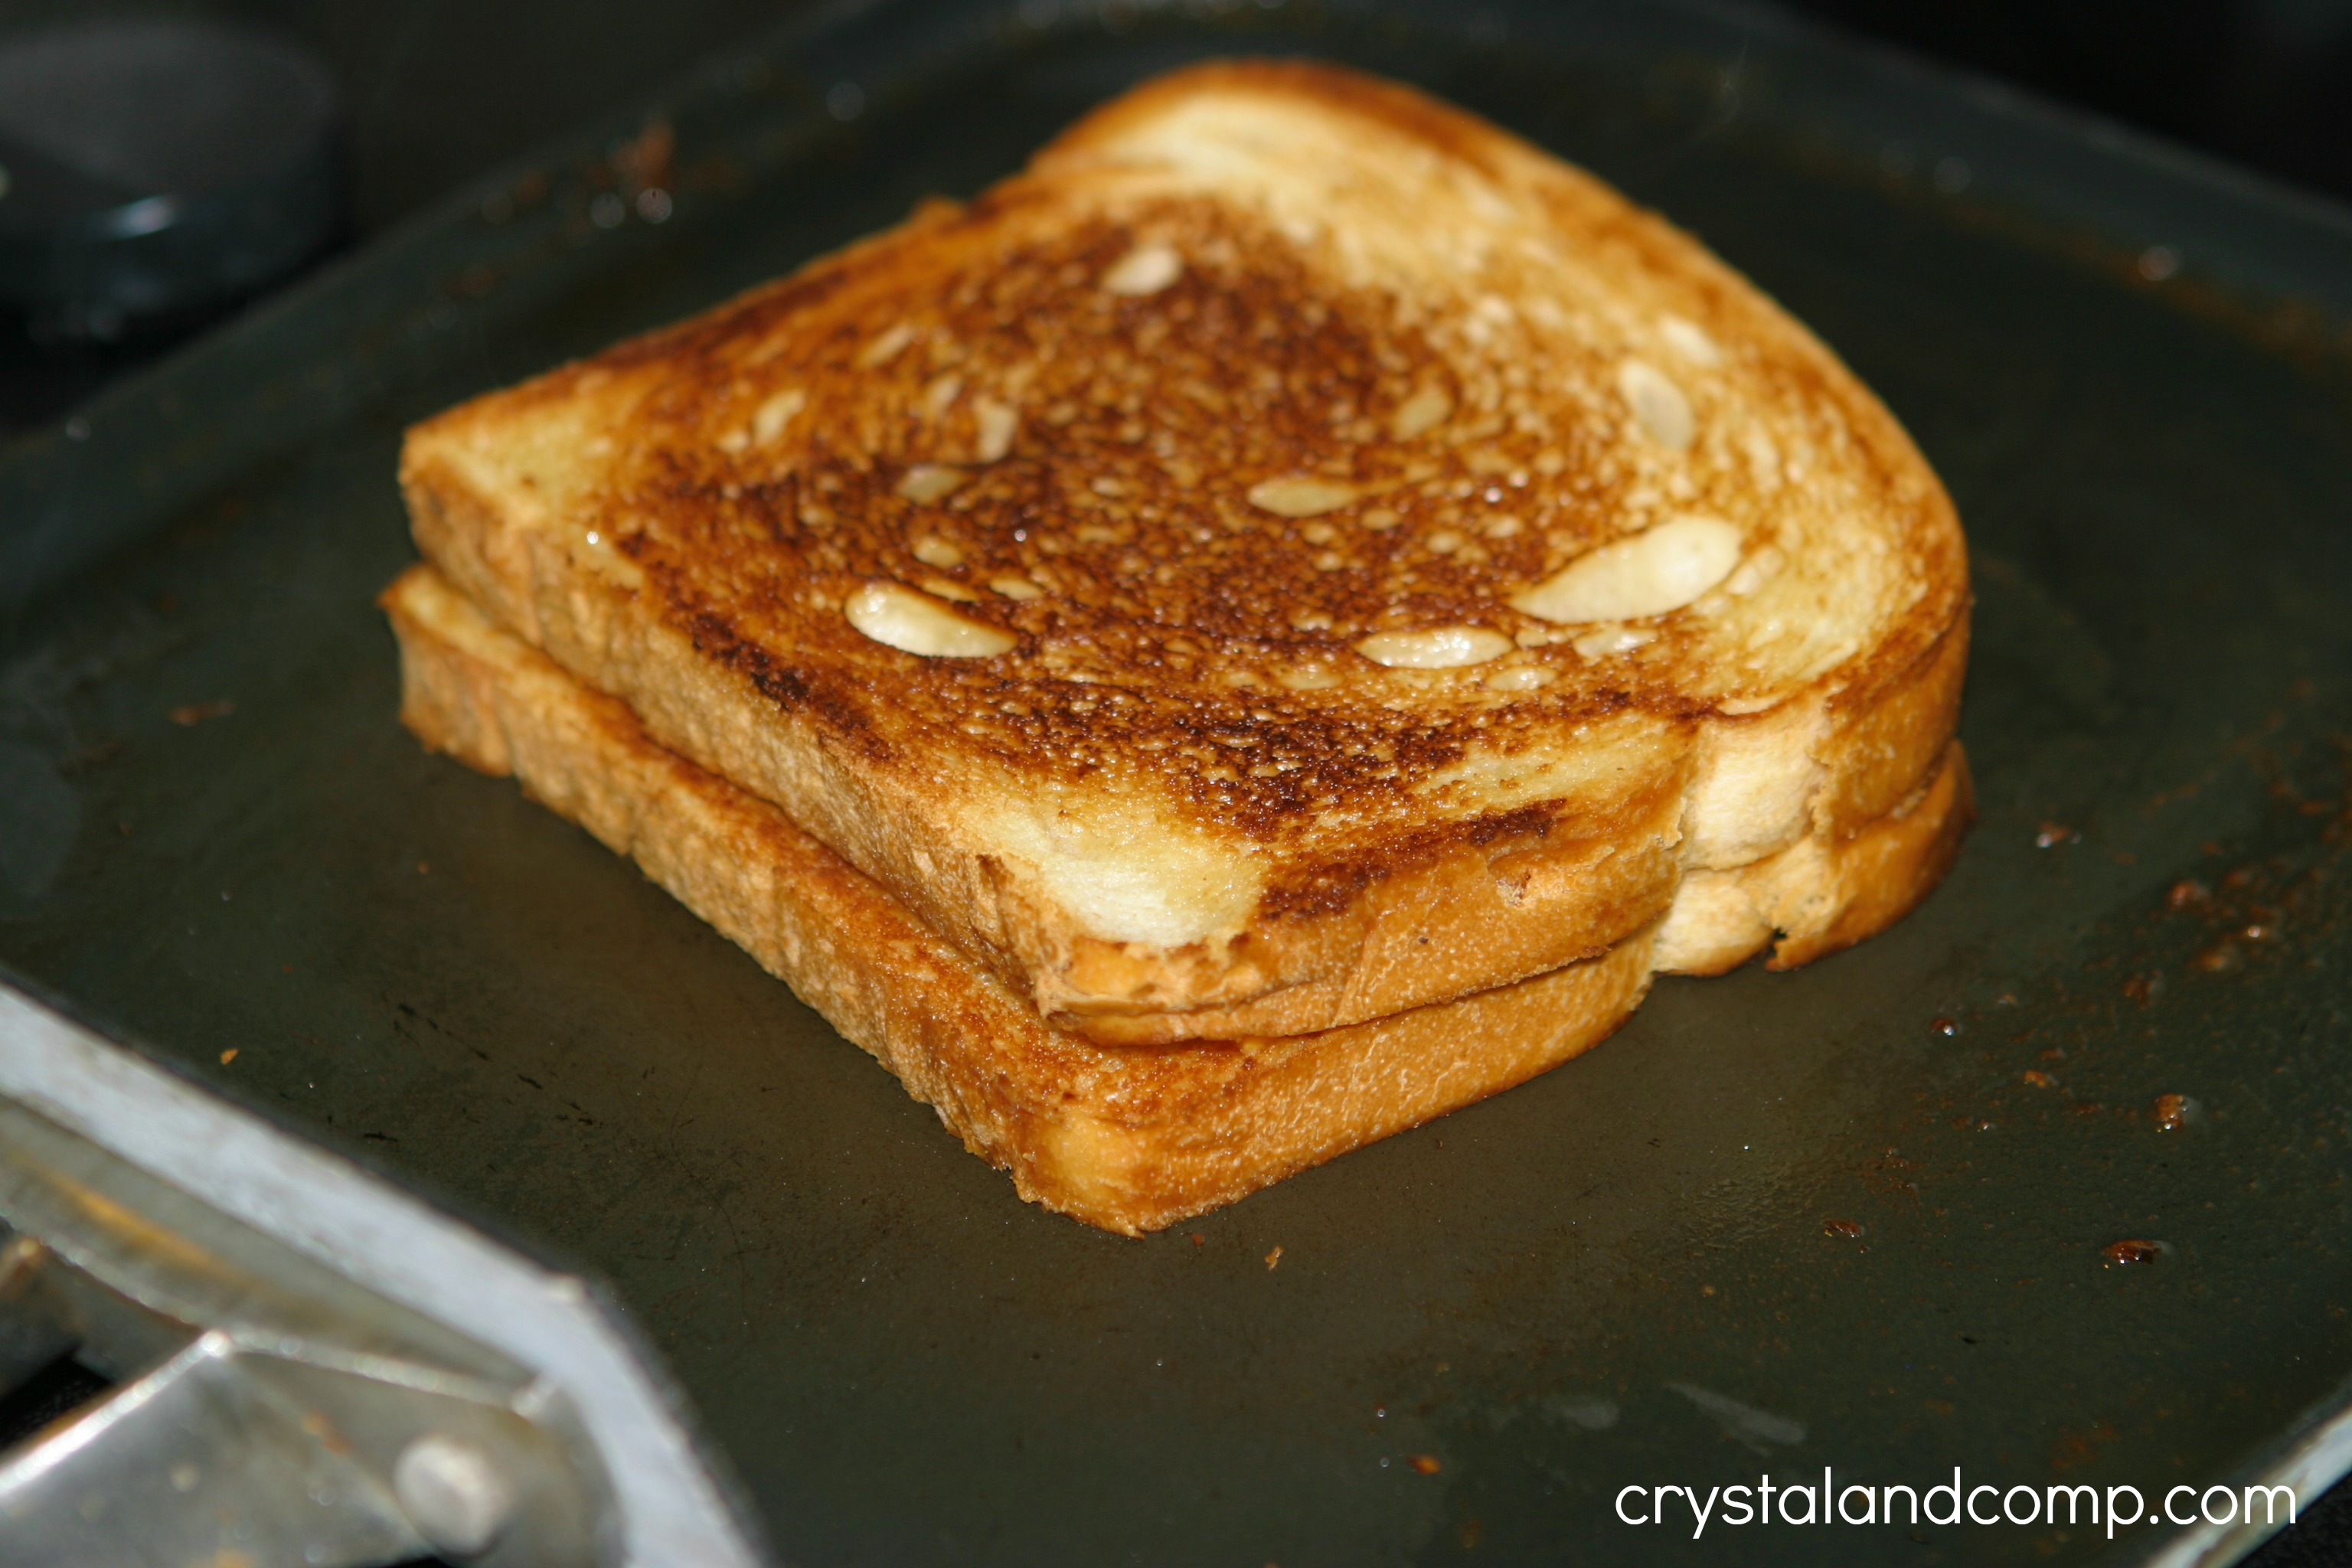 ... are equally toasted, you have the best grilled cheese sandwich ever